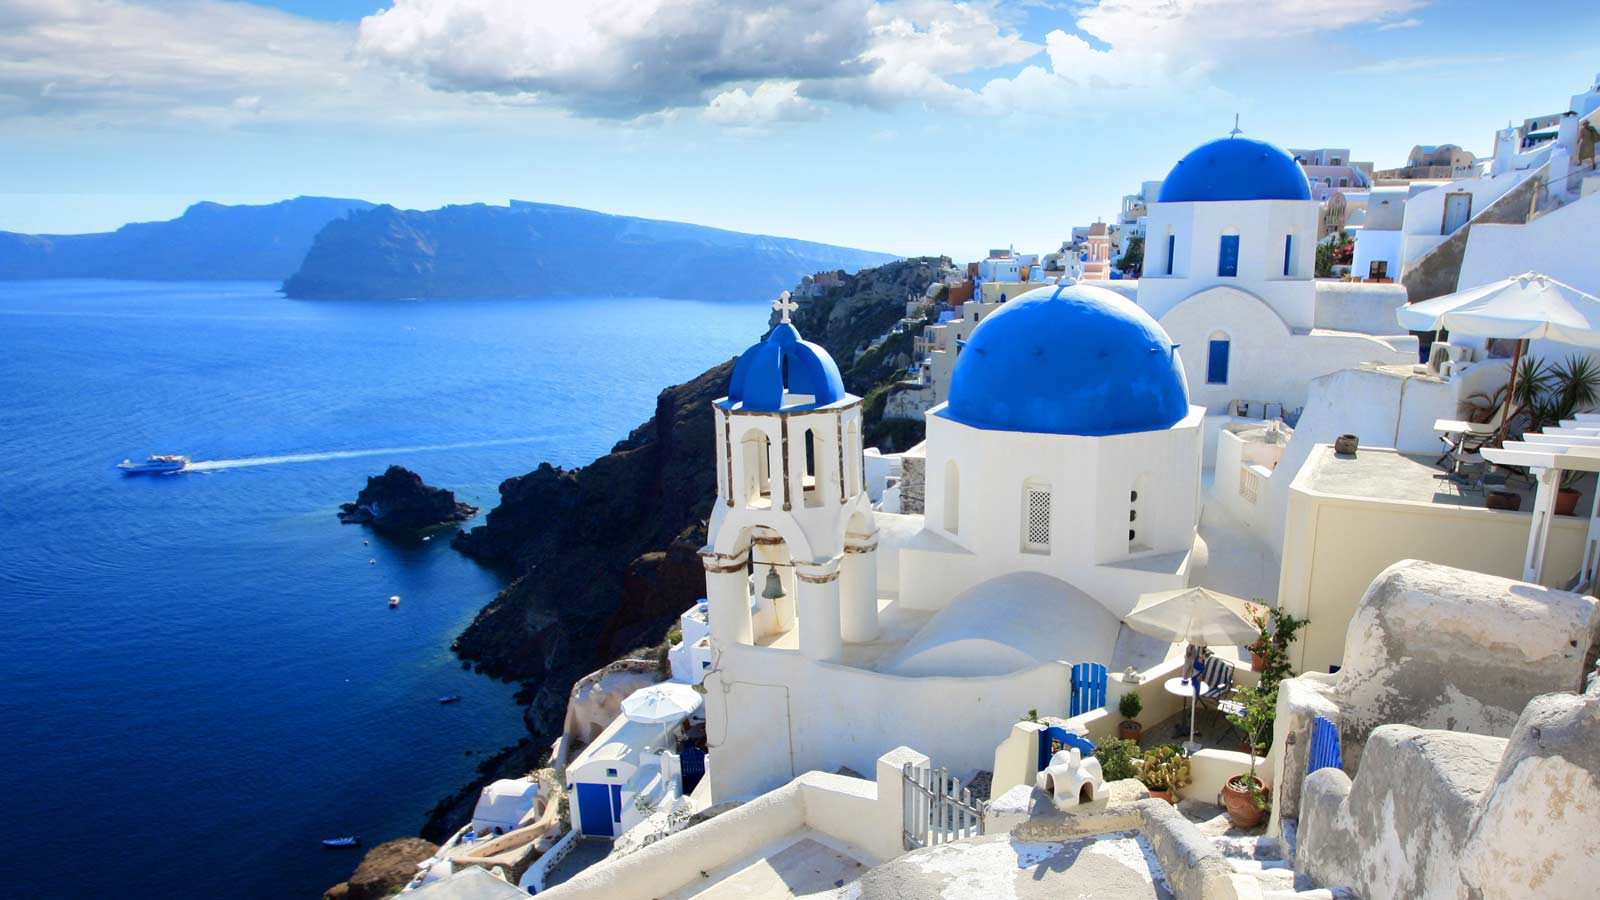 Cruise Greece Yachts - Santorini yachting